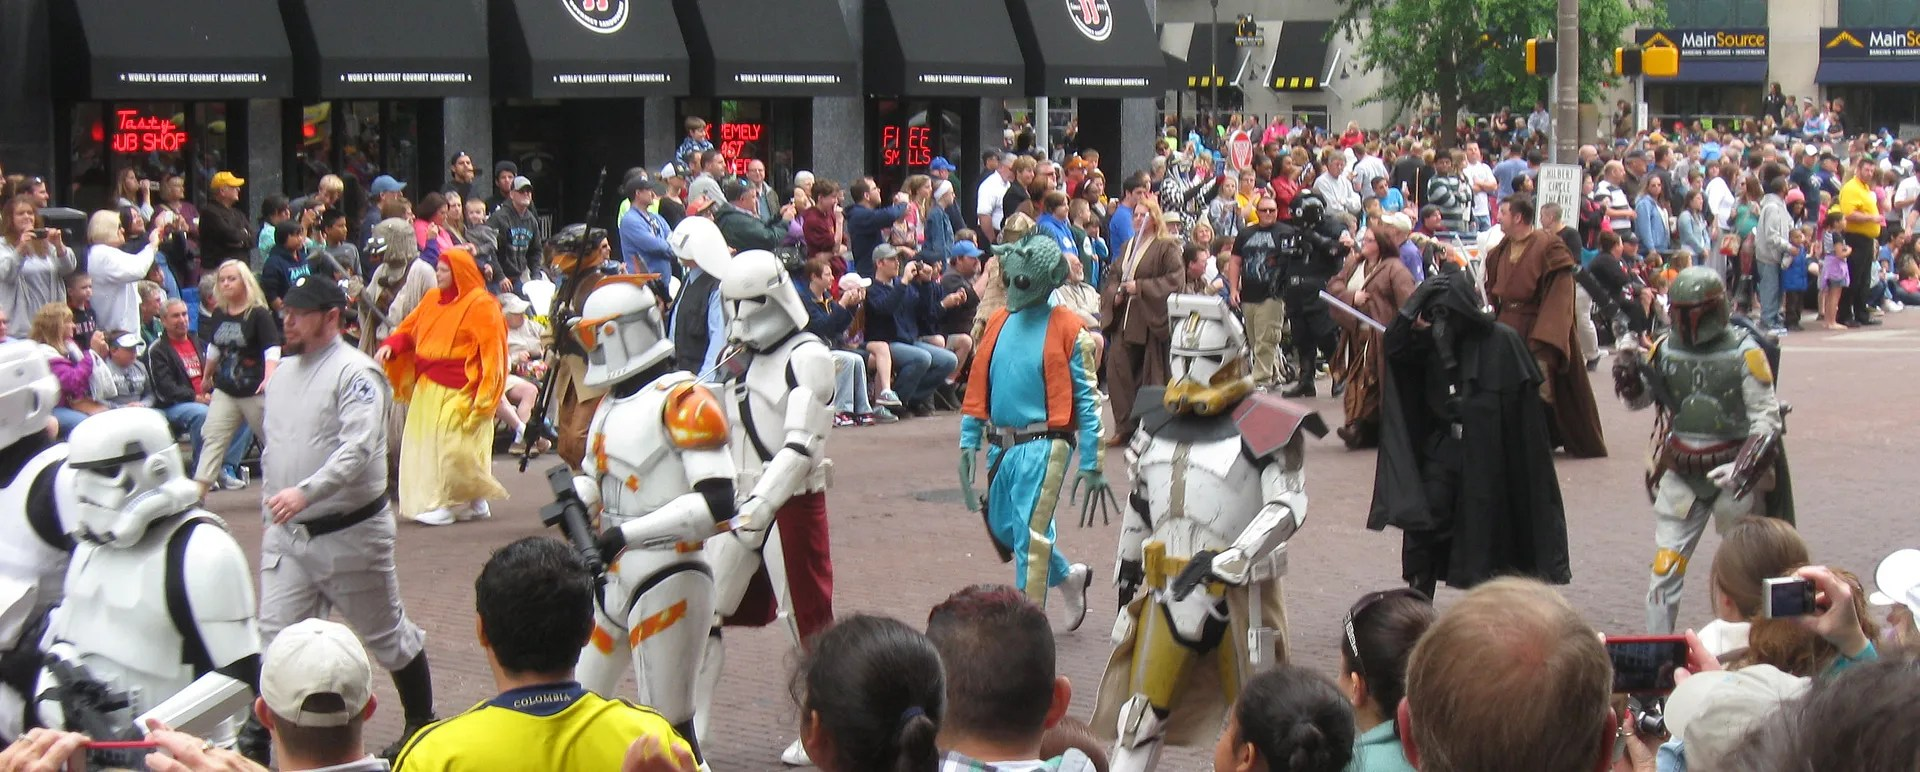 Clonetroopers, bounty hunters, Star Wars, 500 Festival Parade 2013, Indianapolis